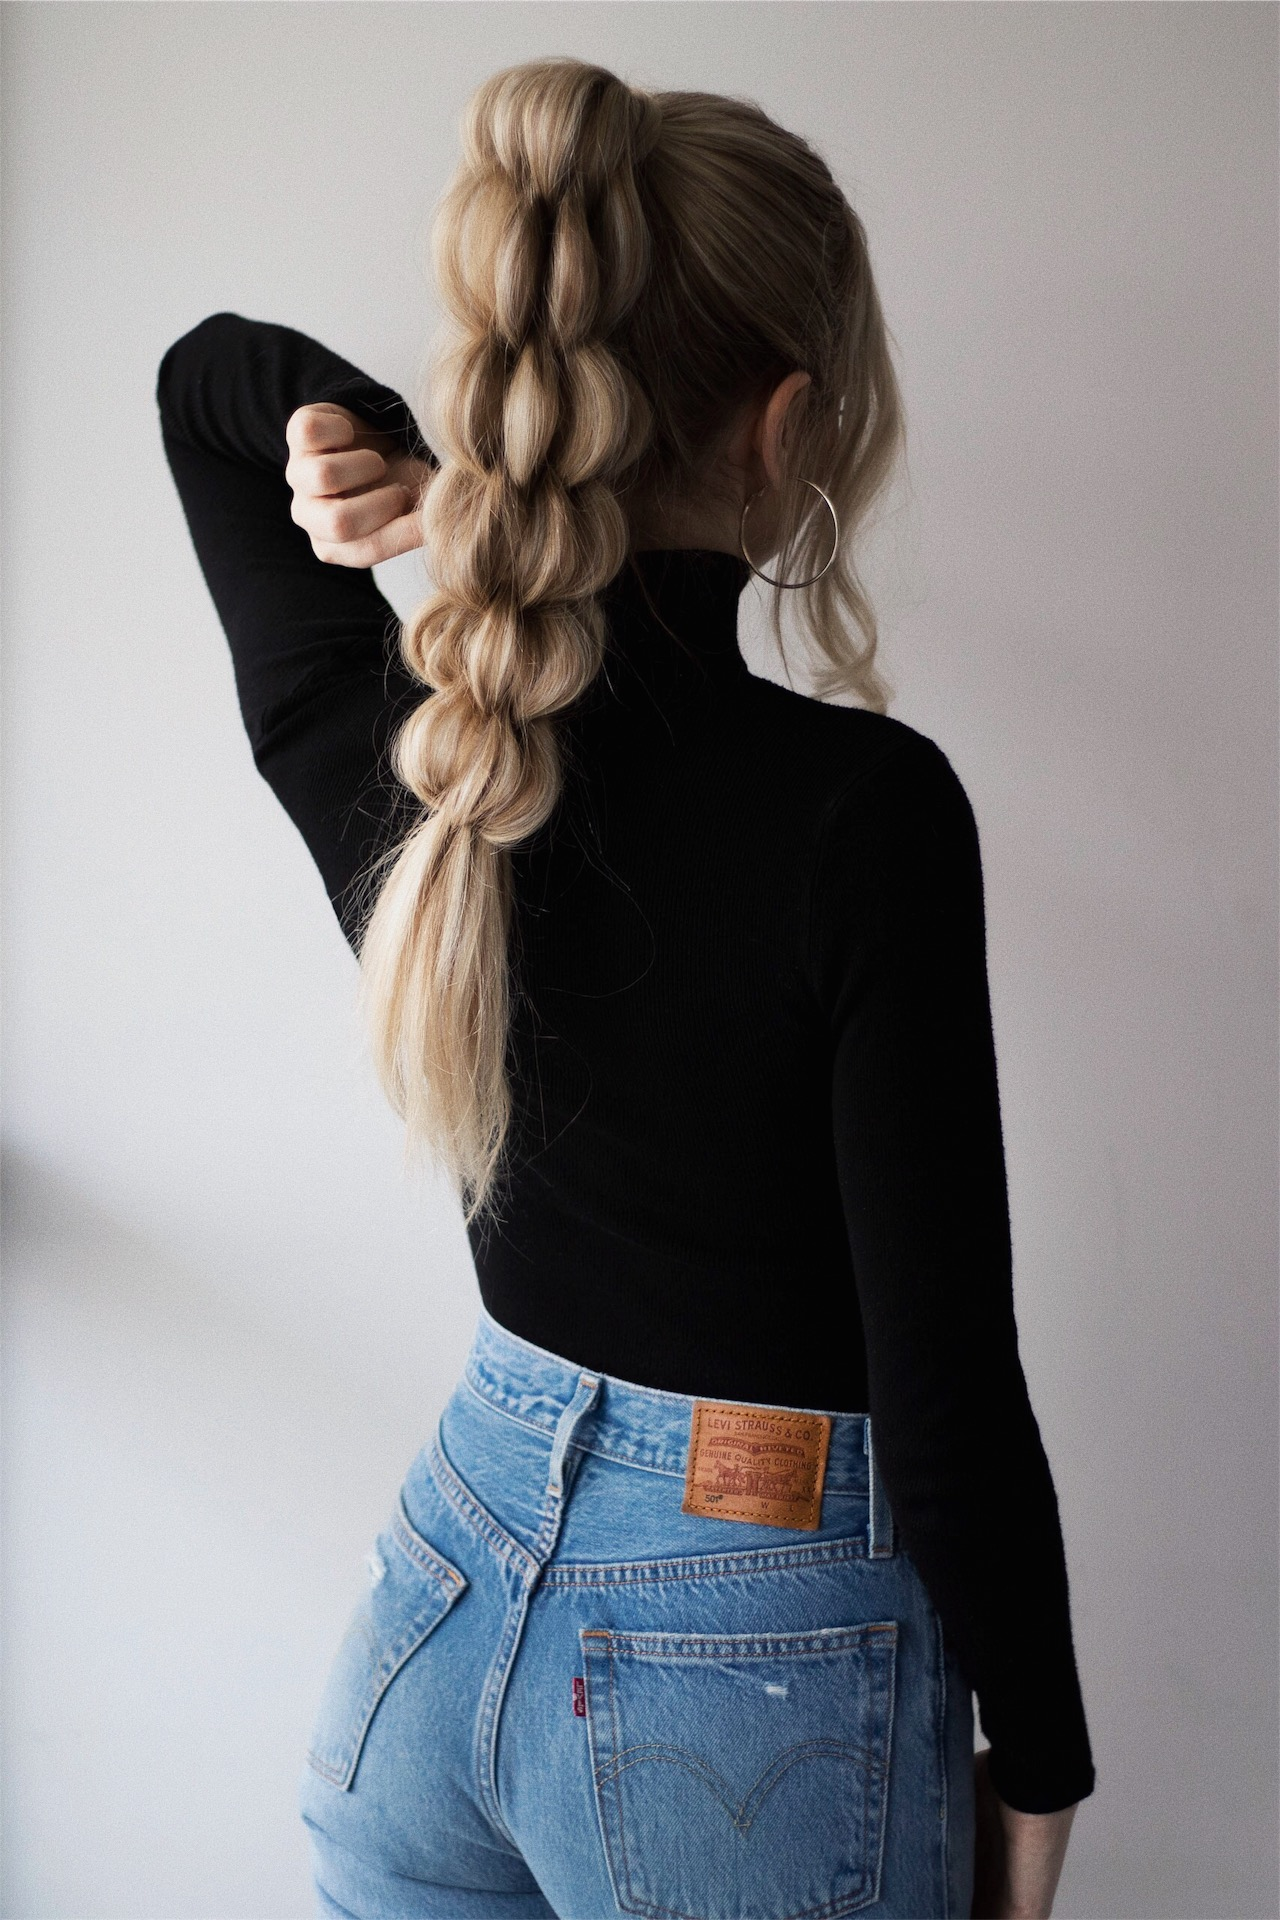 UNIQUE BRAIDED PONYTAIL HAIR TUTORIAL | www.alexgaboury.com